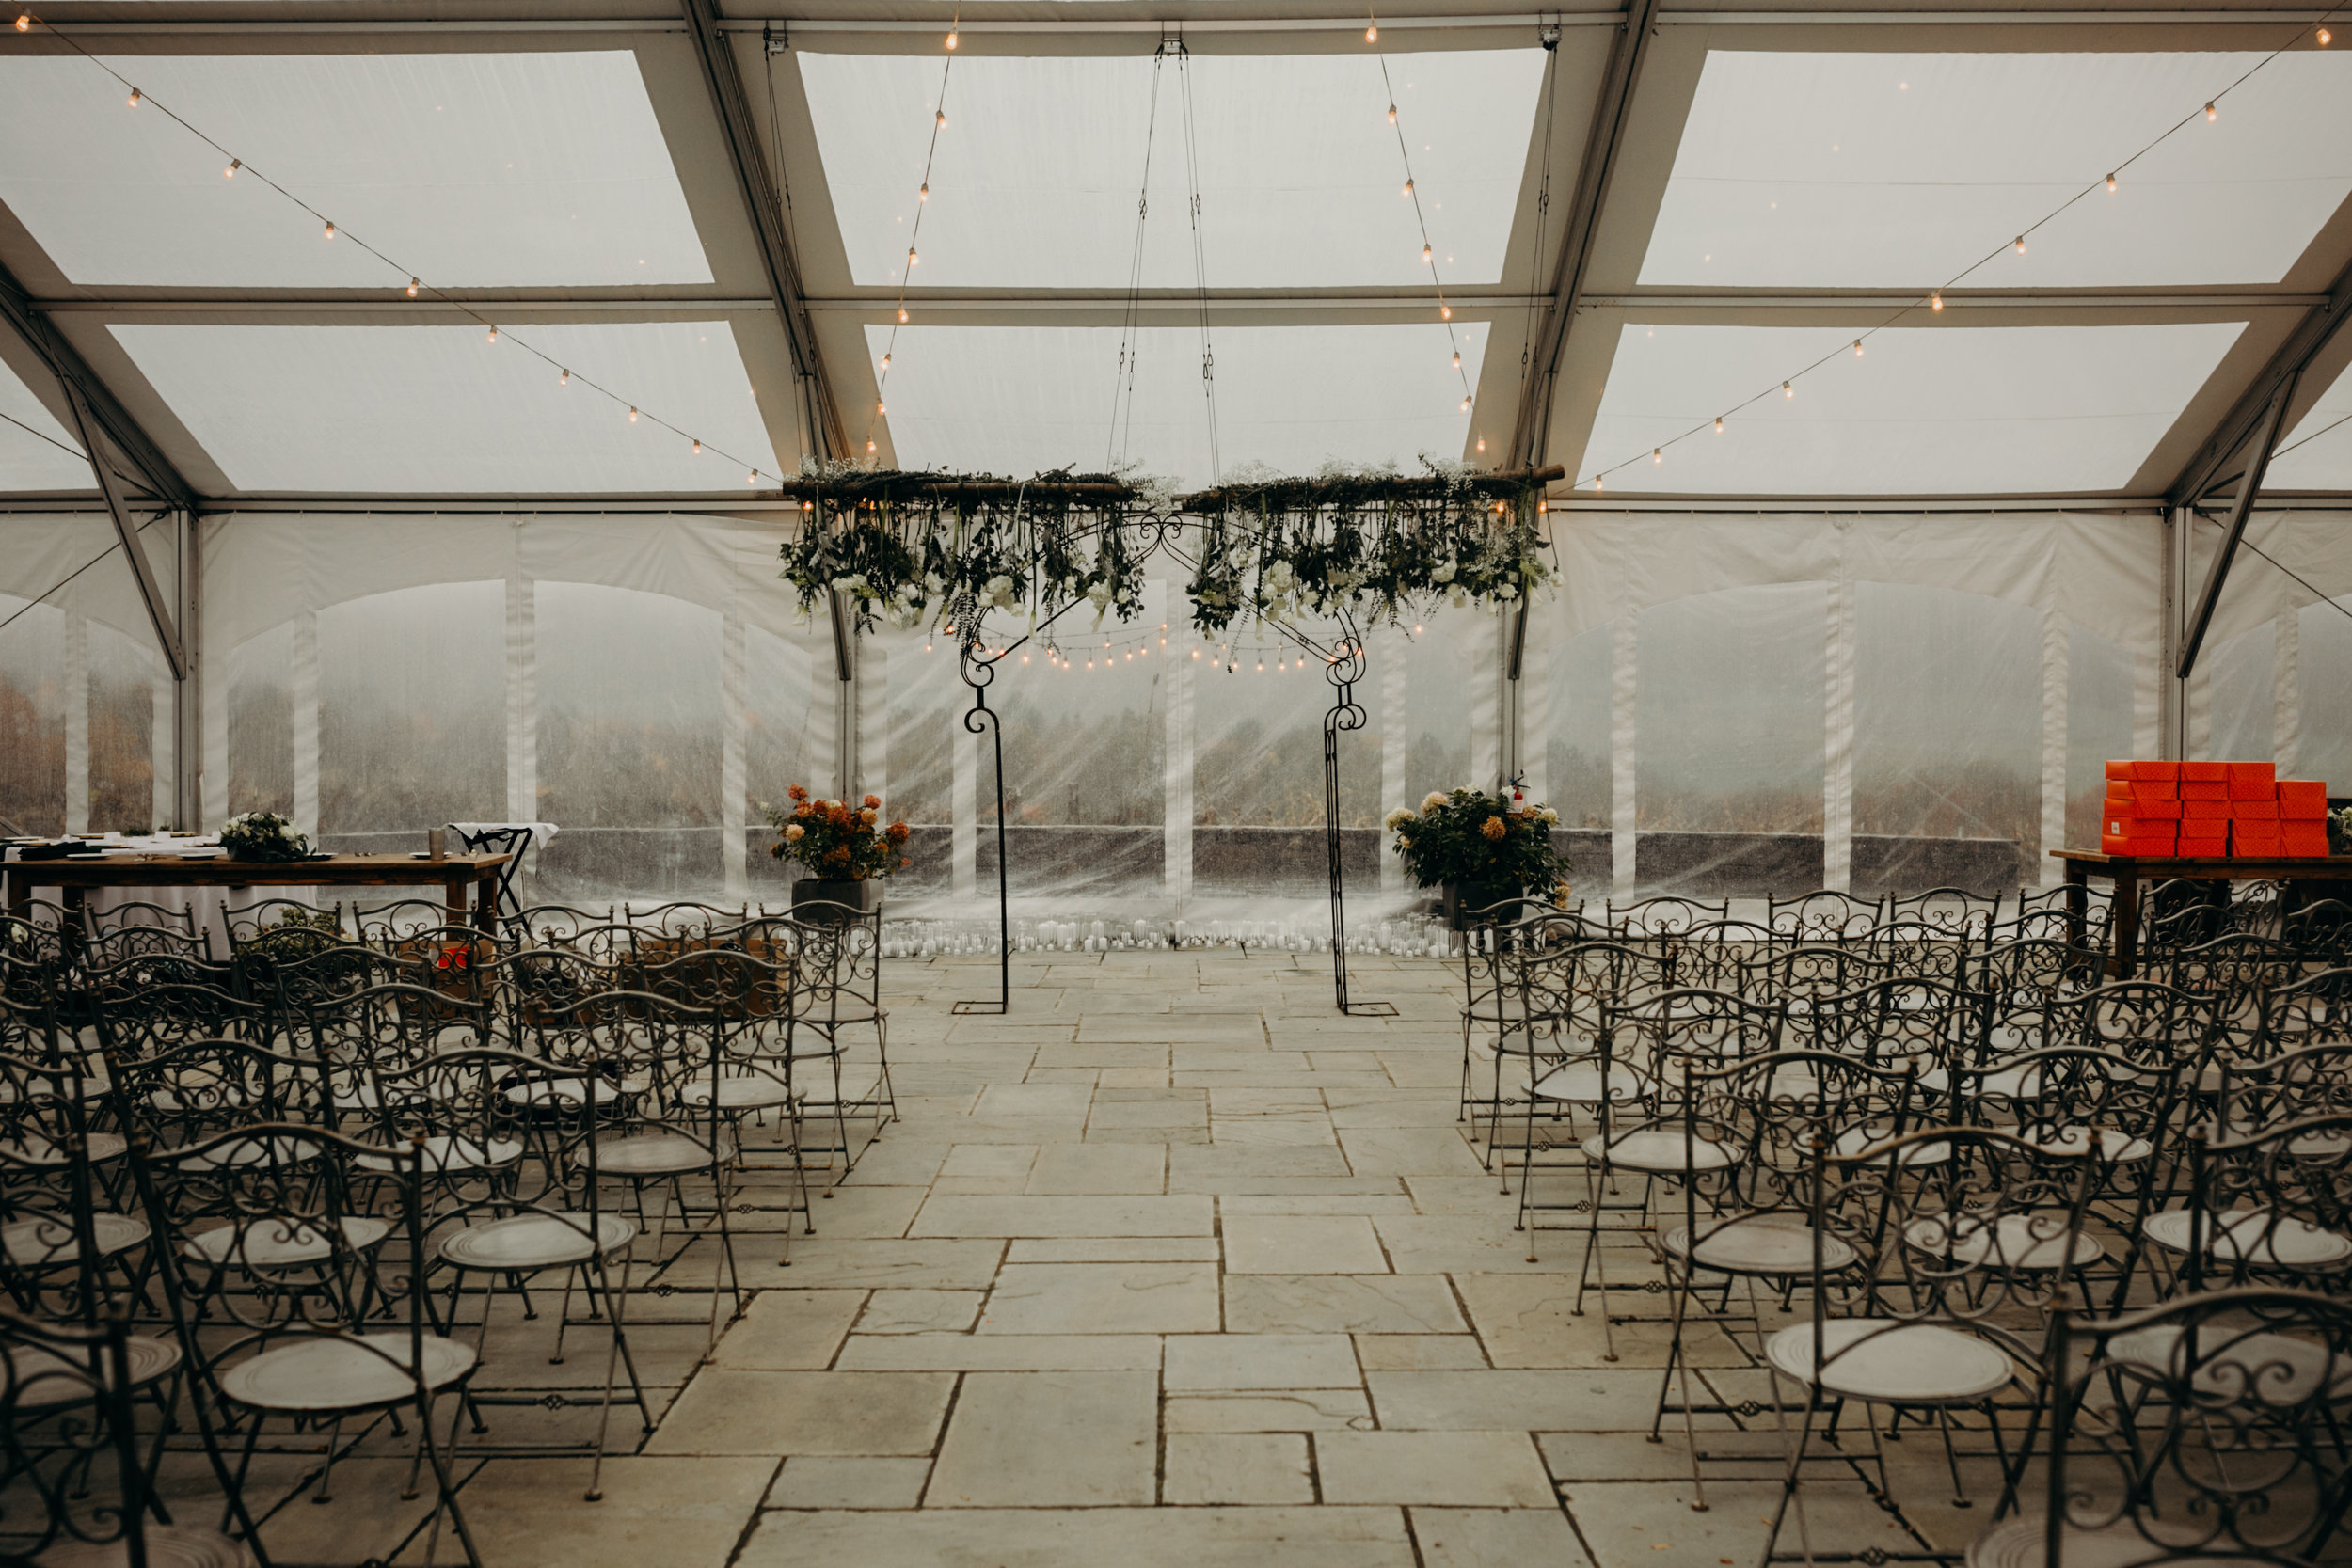 Due to rain, the ceremony had to be moved to the inside of the tent, but I think it's for the best in this case.